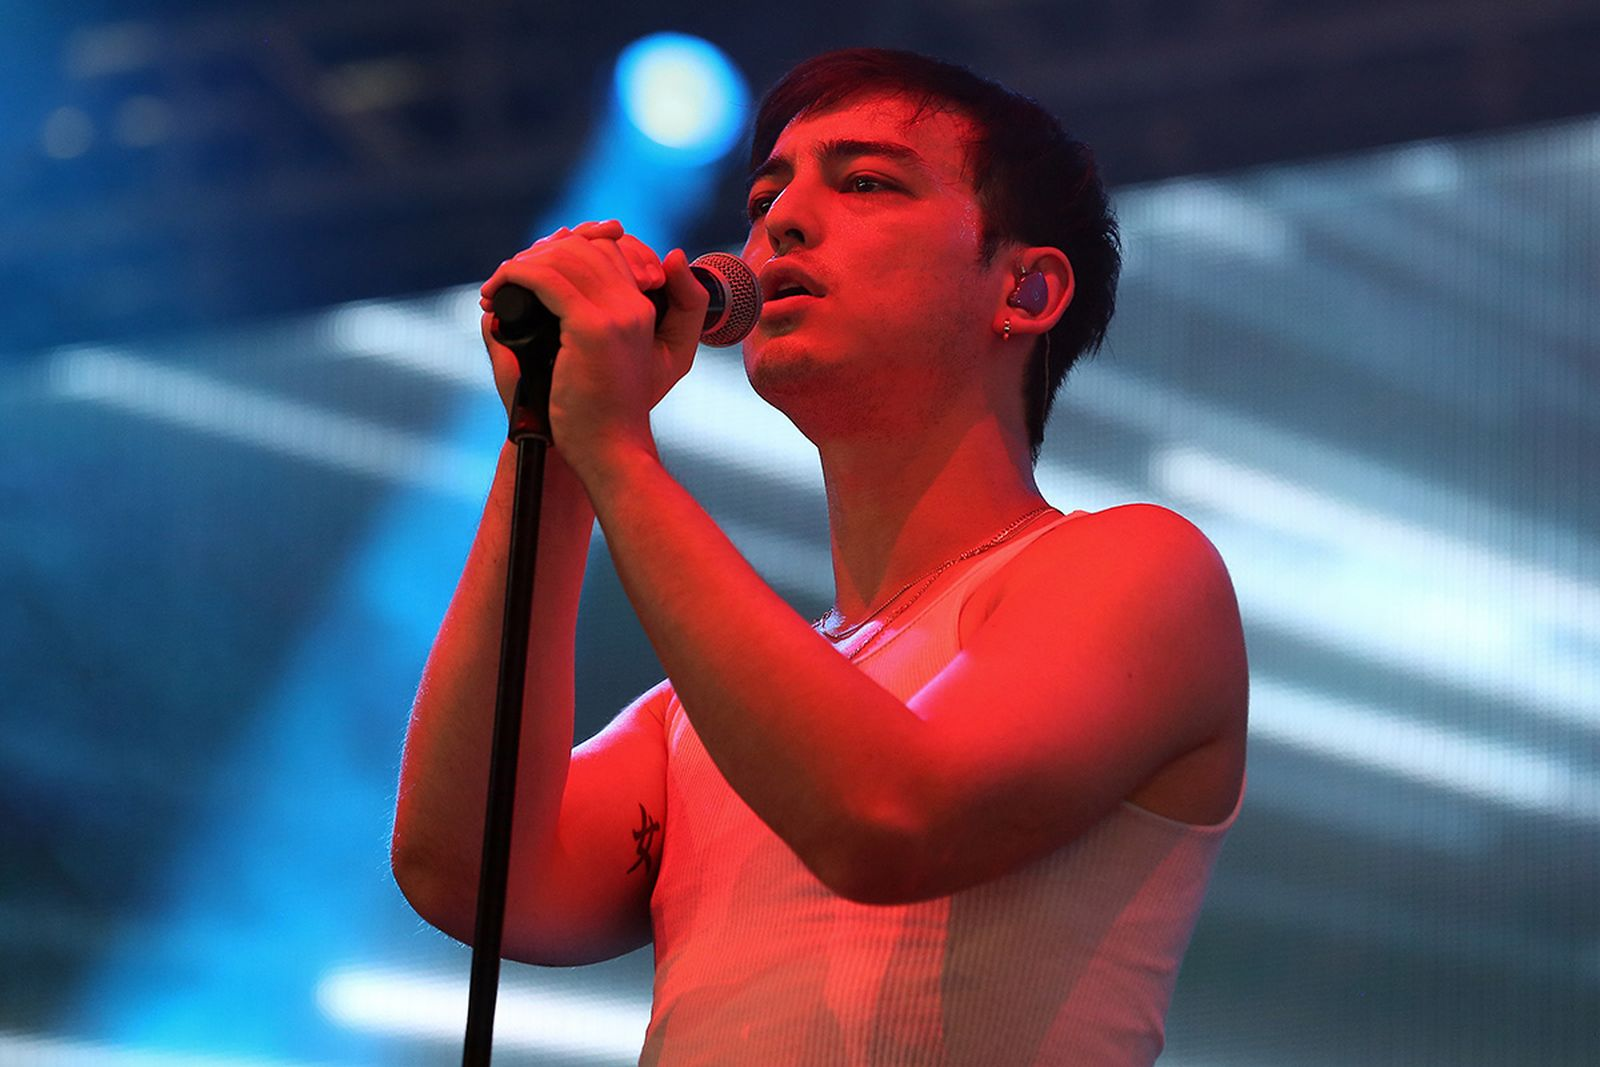 Joji performs live on the BBC Radio 1 Stage during day one of Reading Festival